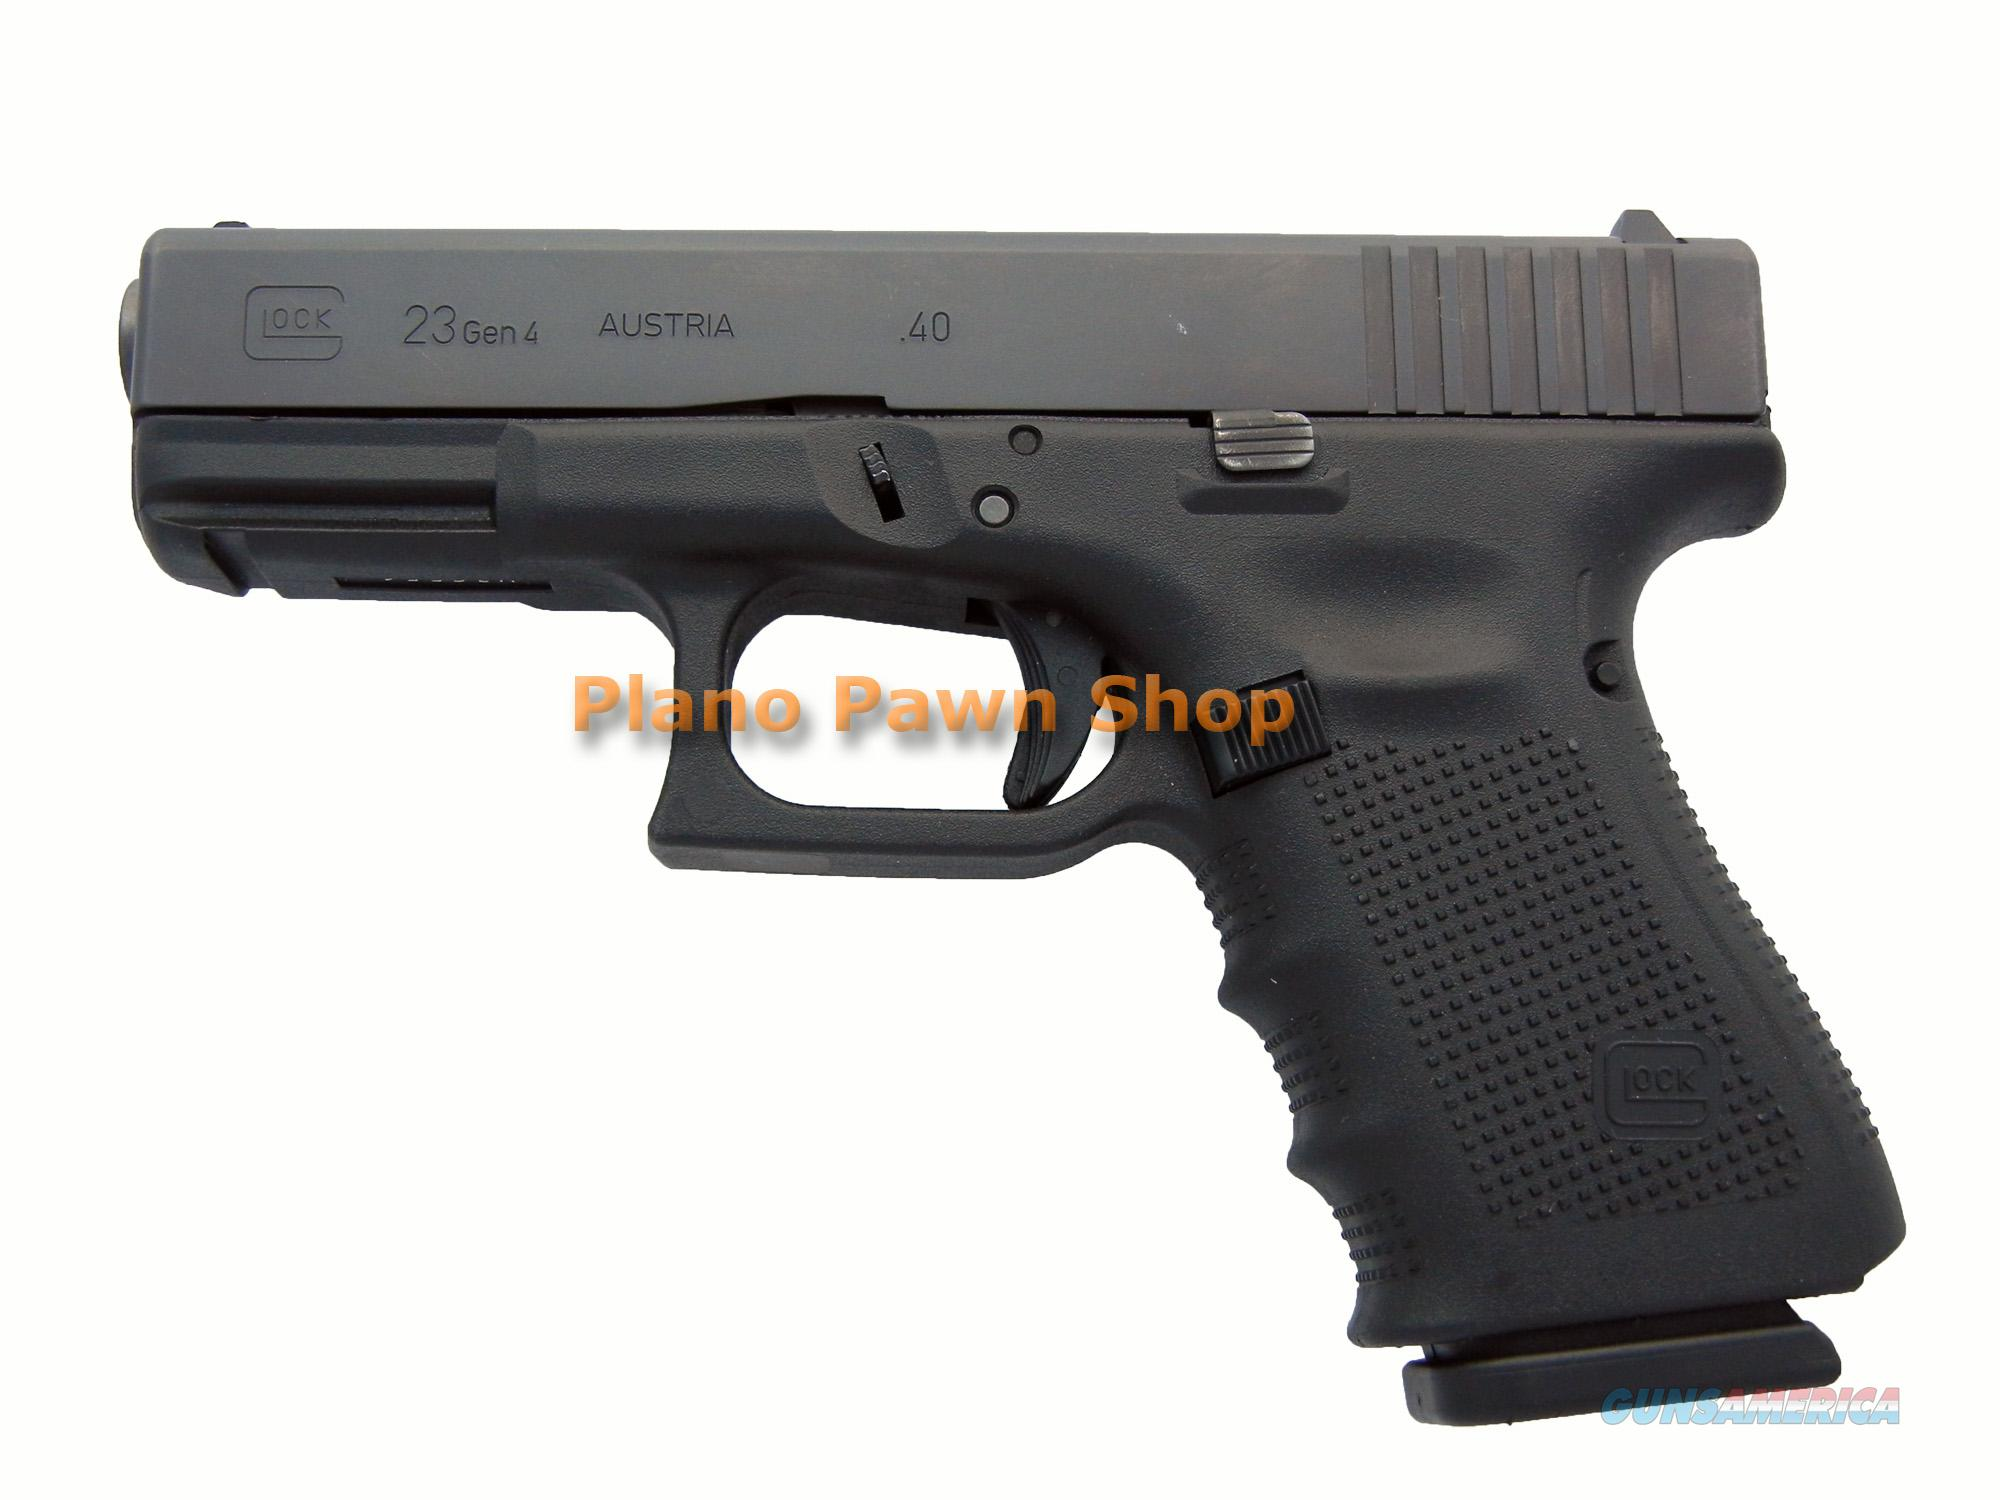 Glock Model 23 Gen 4 .40SW with 1 Magazine  Guns > Pistols > Glock Pistols > 23